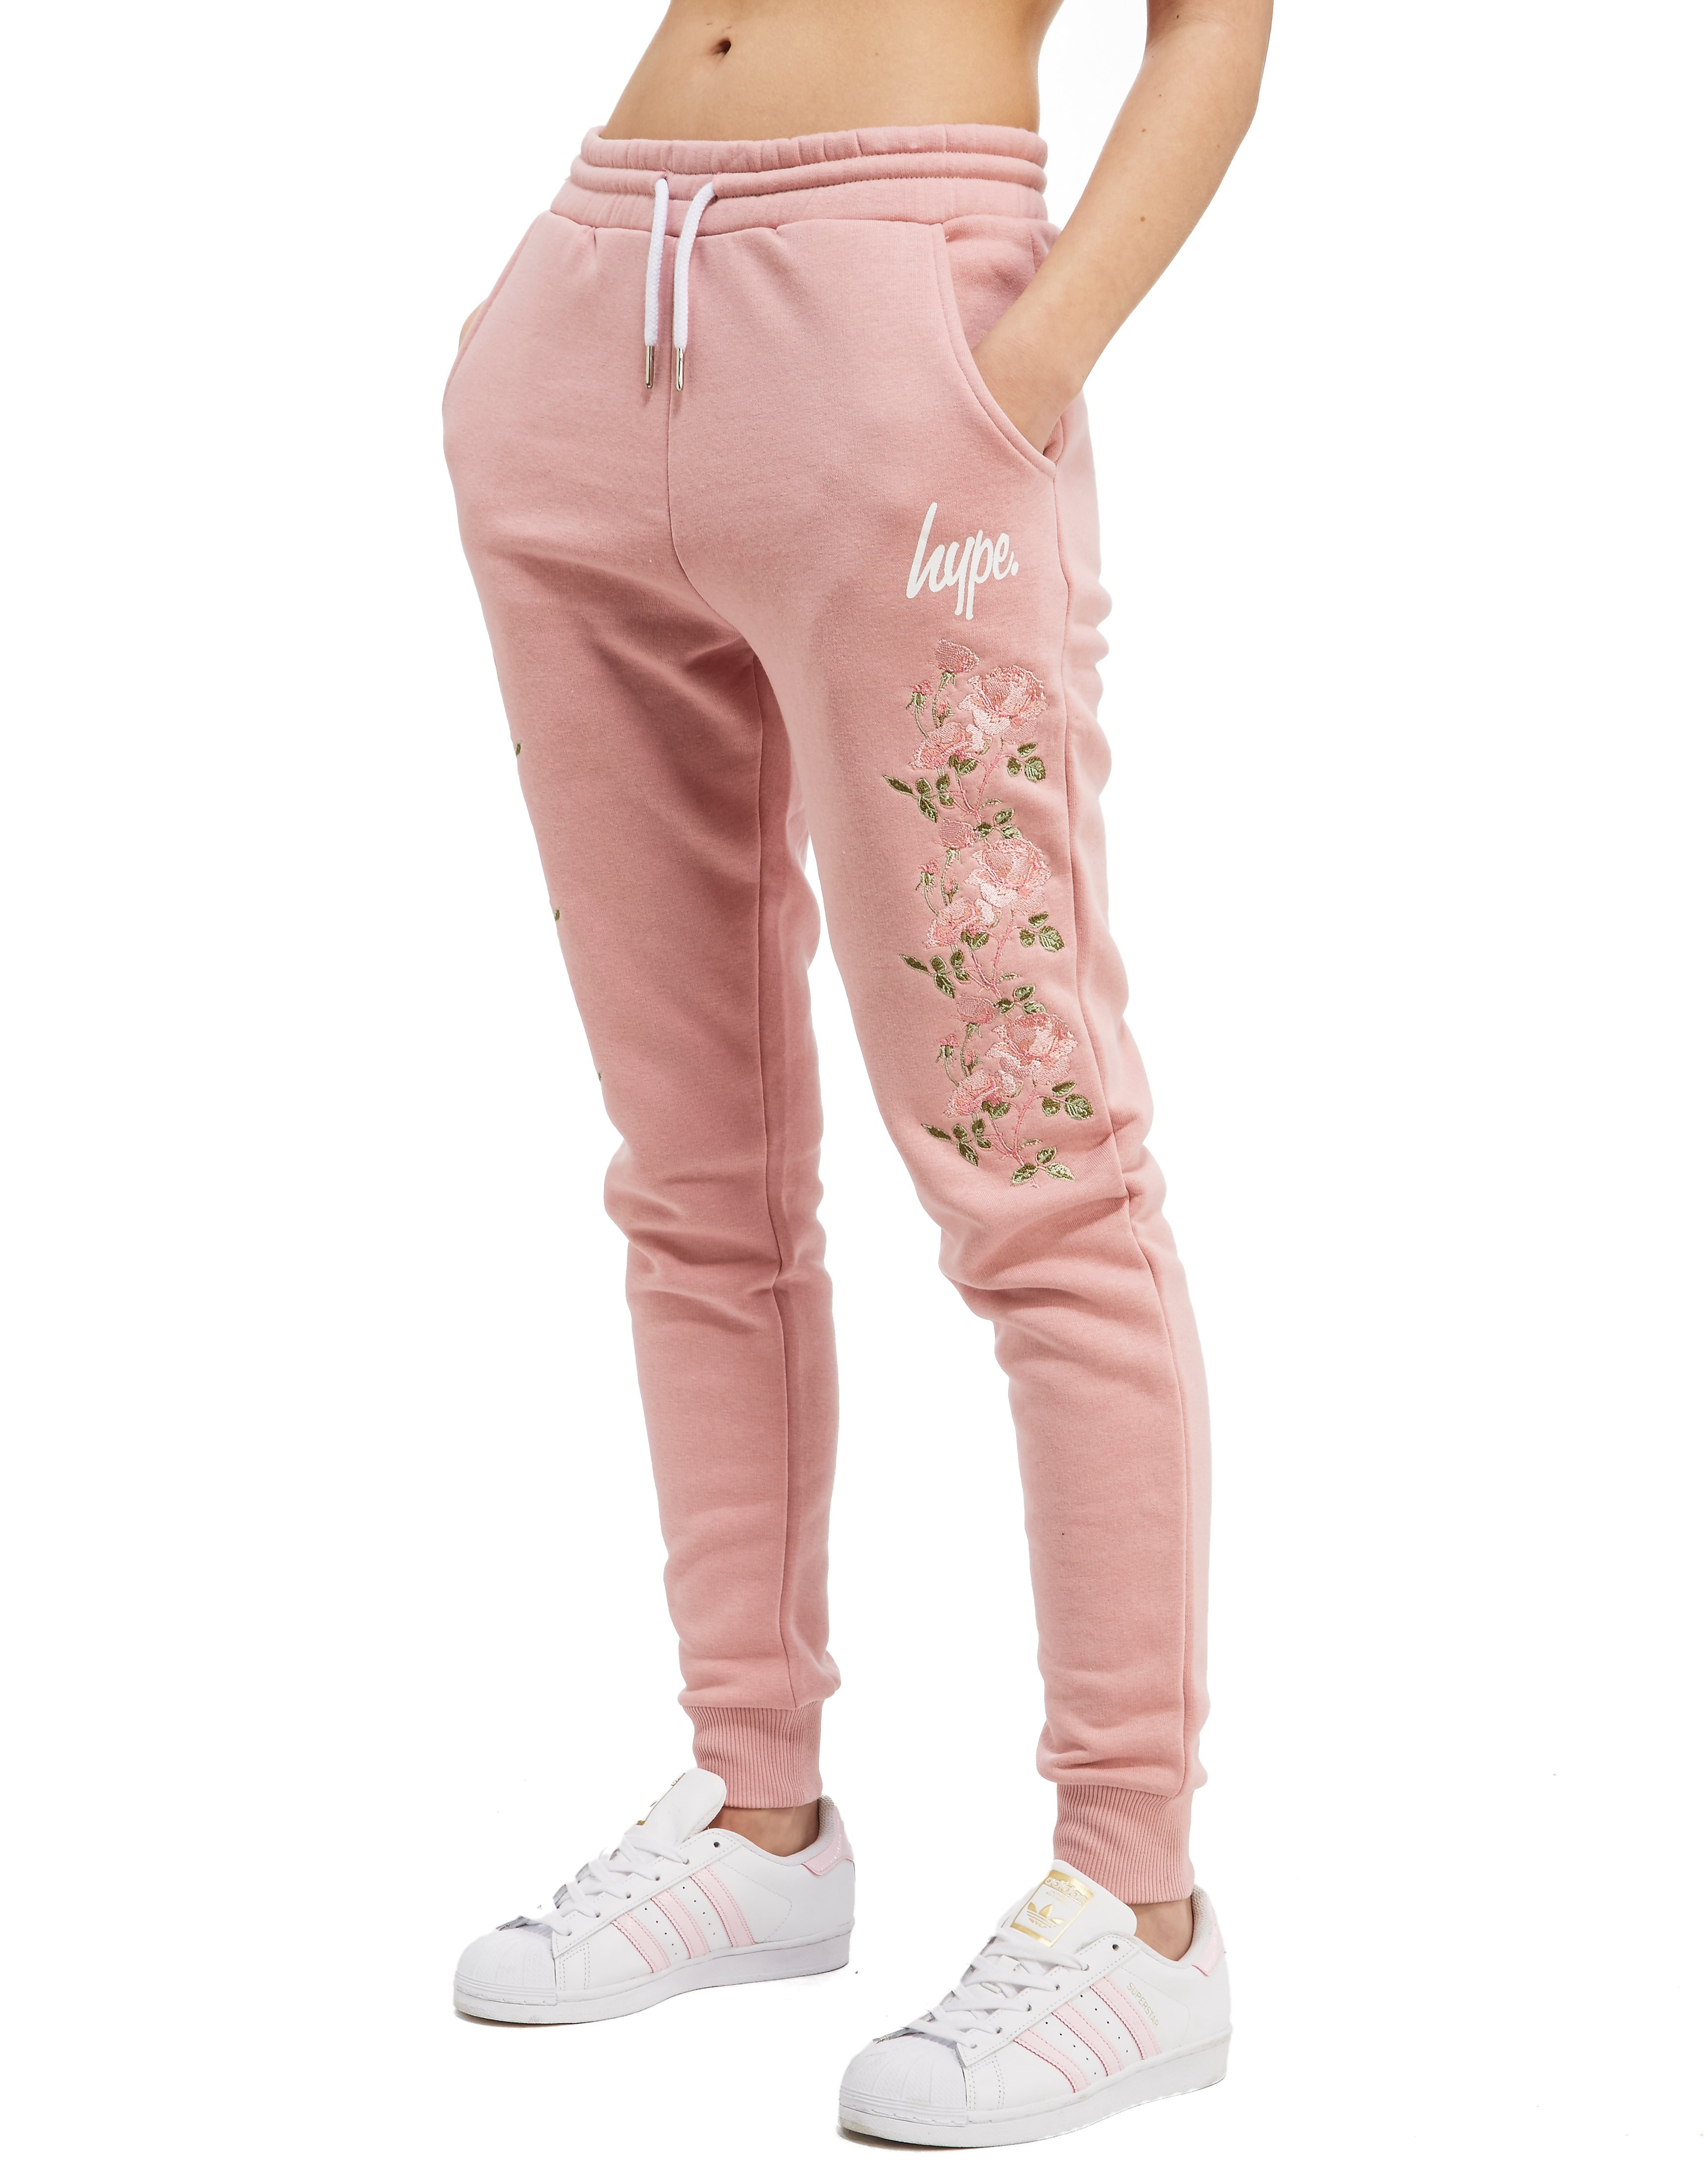 Hype Floral Fleece Pants